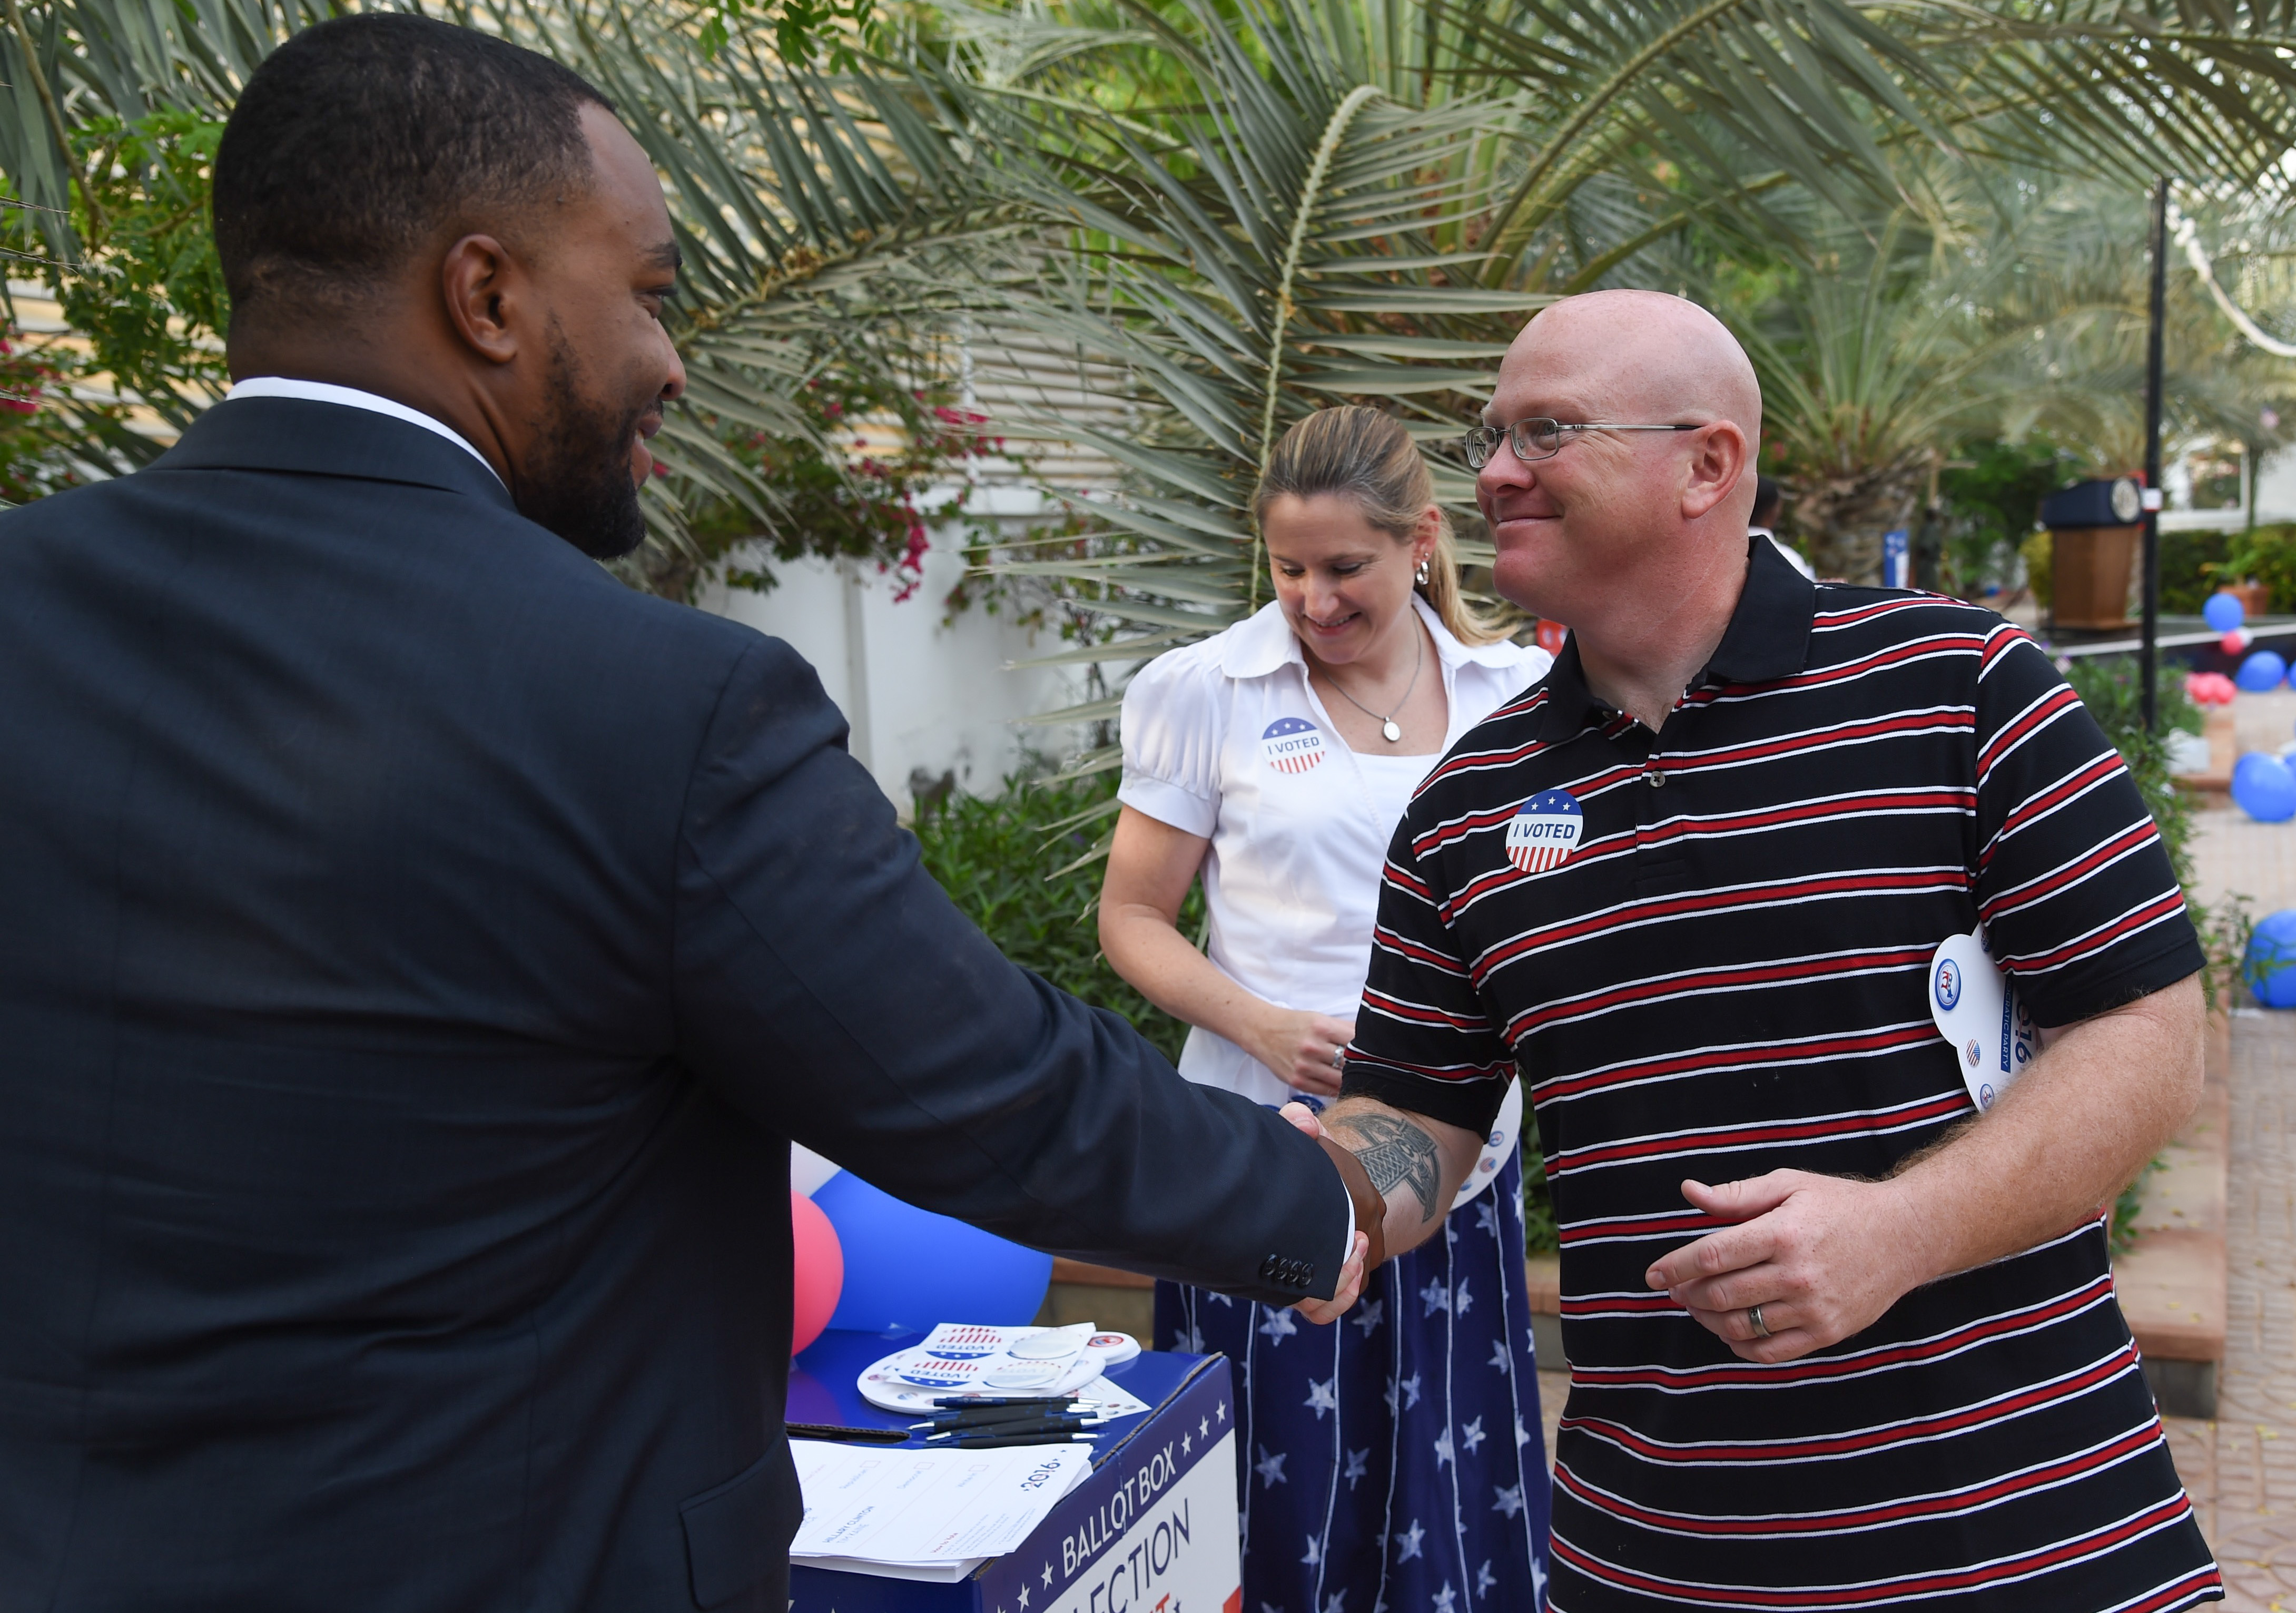 U.S. Air Force Tech. Sgt. Timothy Gallagher, Combined Joint Task Force-Horn of Africa, Public Affairs Office, and other guests of the U.S. Ambassador to Djibouti vote in a mock election during an election day breakfast, Nov. 9, 2016, in Djibouti, Djibouti. The event allowed political leaders, American community members, youth leaders, and members of the business community to participate in a celebration of American values and traditions. (U.S. Air National Guard photo by Staff Sgt. Penny Snoozy)